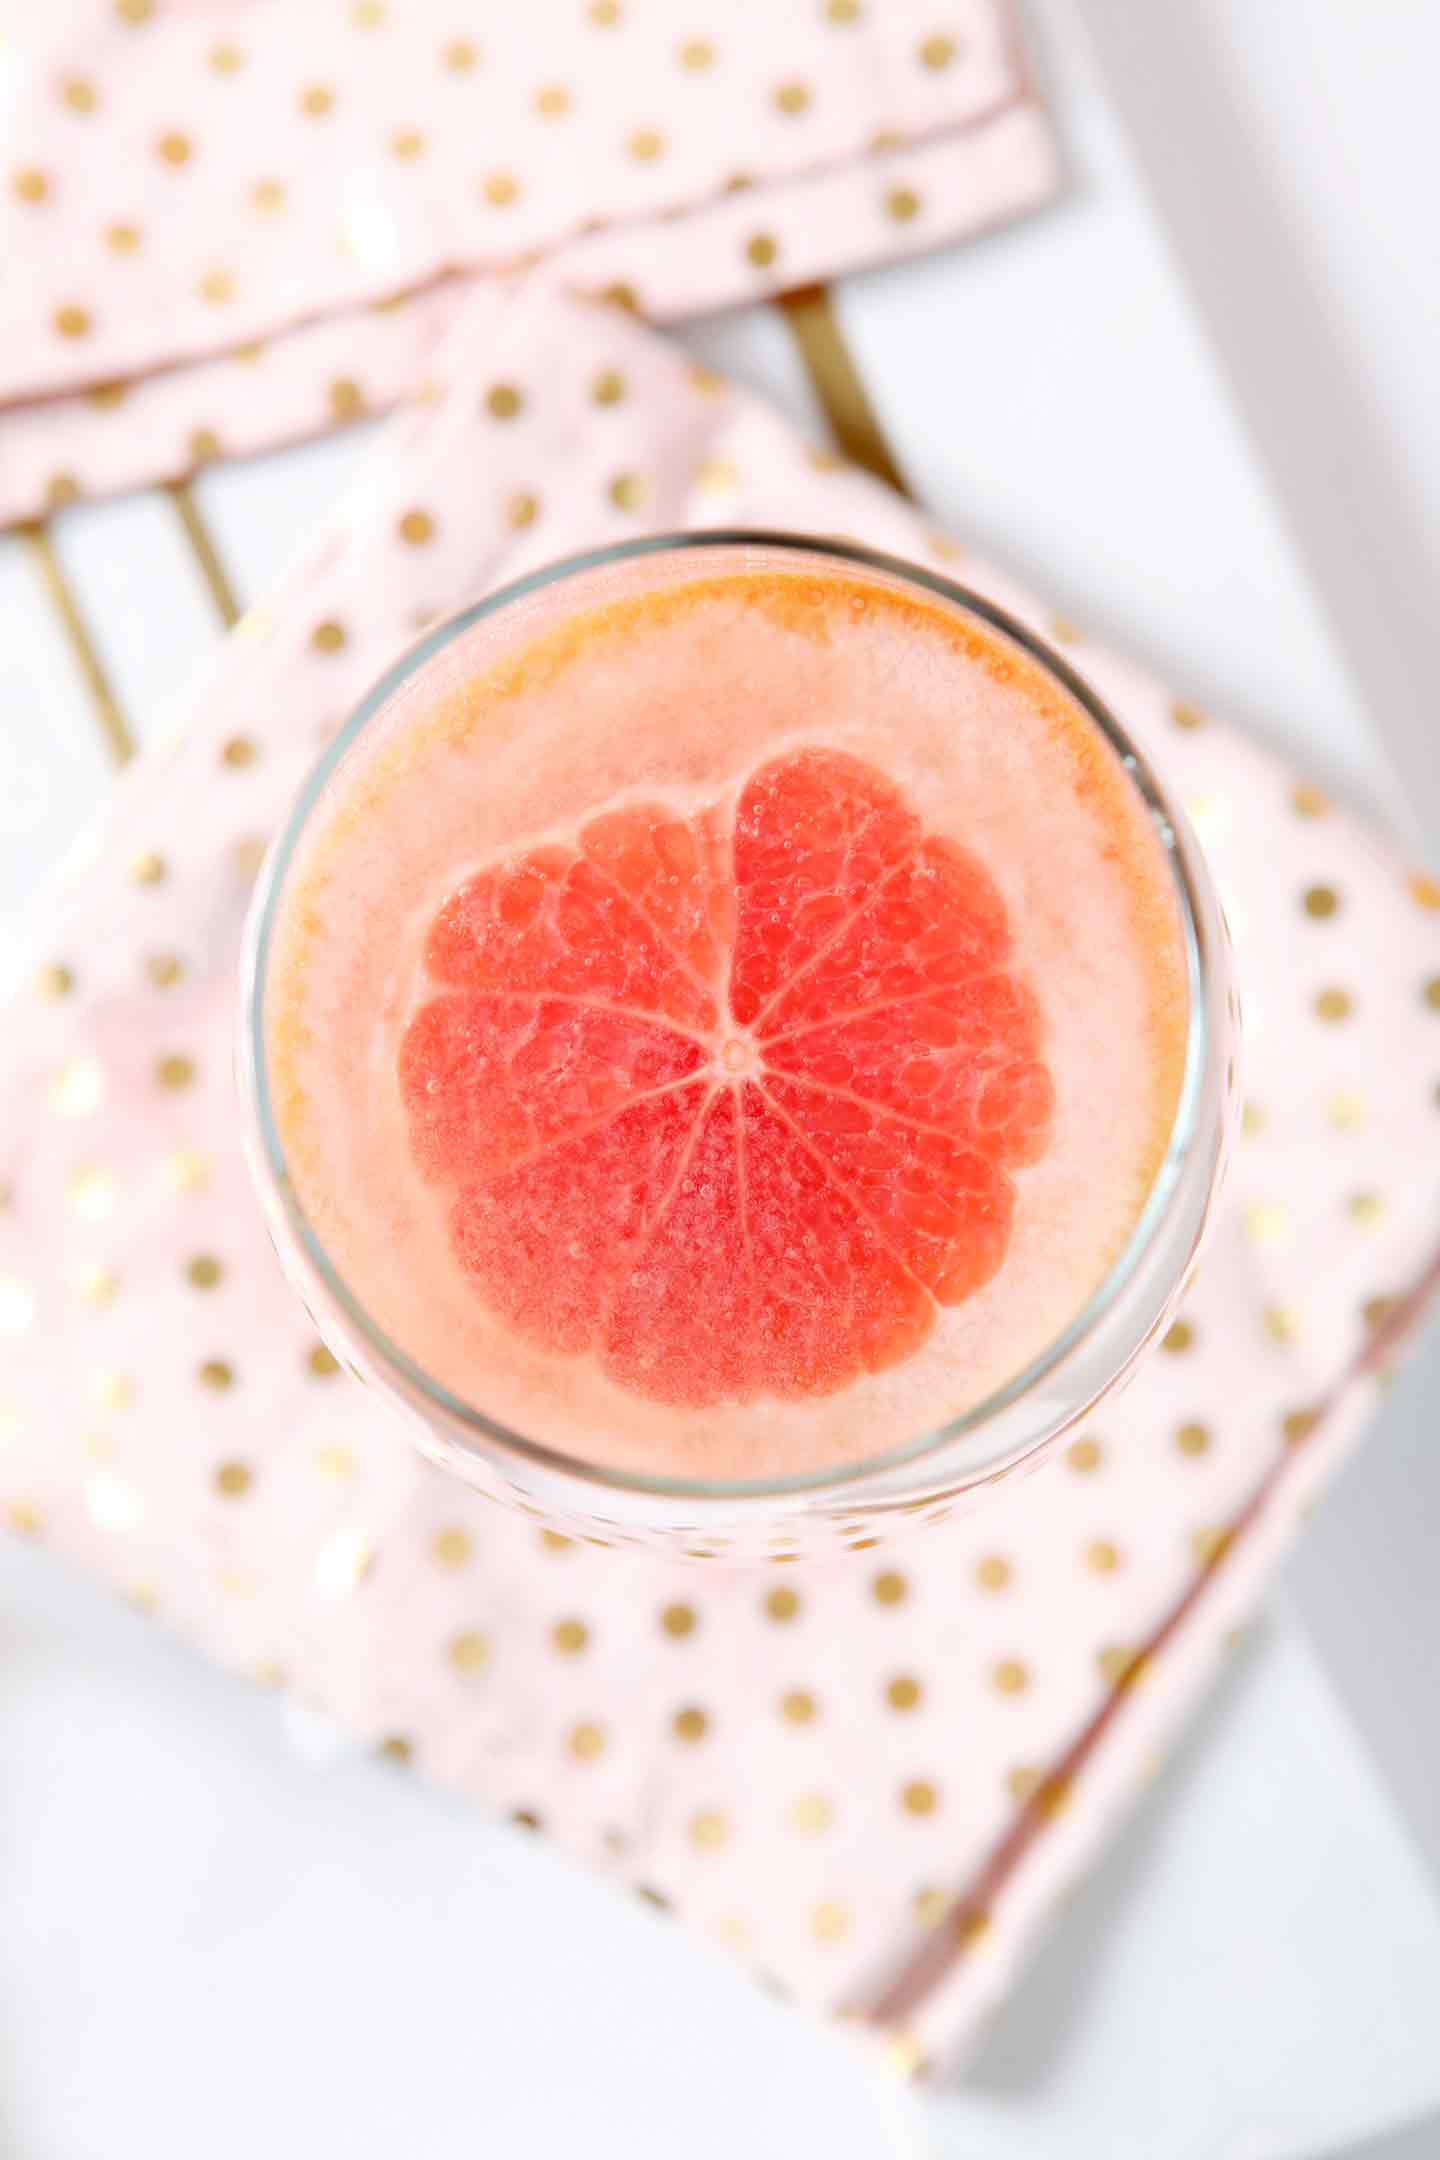 Celebrate seasonal produce by mixing this slightly sweet, yet delightfully tart Sparkling Grapefruit Sangria! Freshly squeezed pink grapefruit juice serves as the base of this cocktail, then a bottle of sauvignon blanc is added, along with Meyer lemon, blood orange and grapefruit slices. Chill before serving. Top individual glasses of sangria with Sprouts Farmers Market Sparkling Lemonade. Enjoy this sweet citrus goodness all winter long. #ad